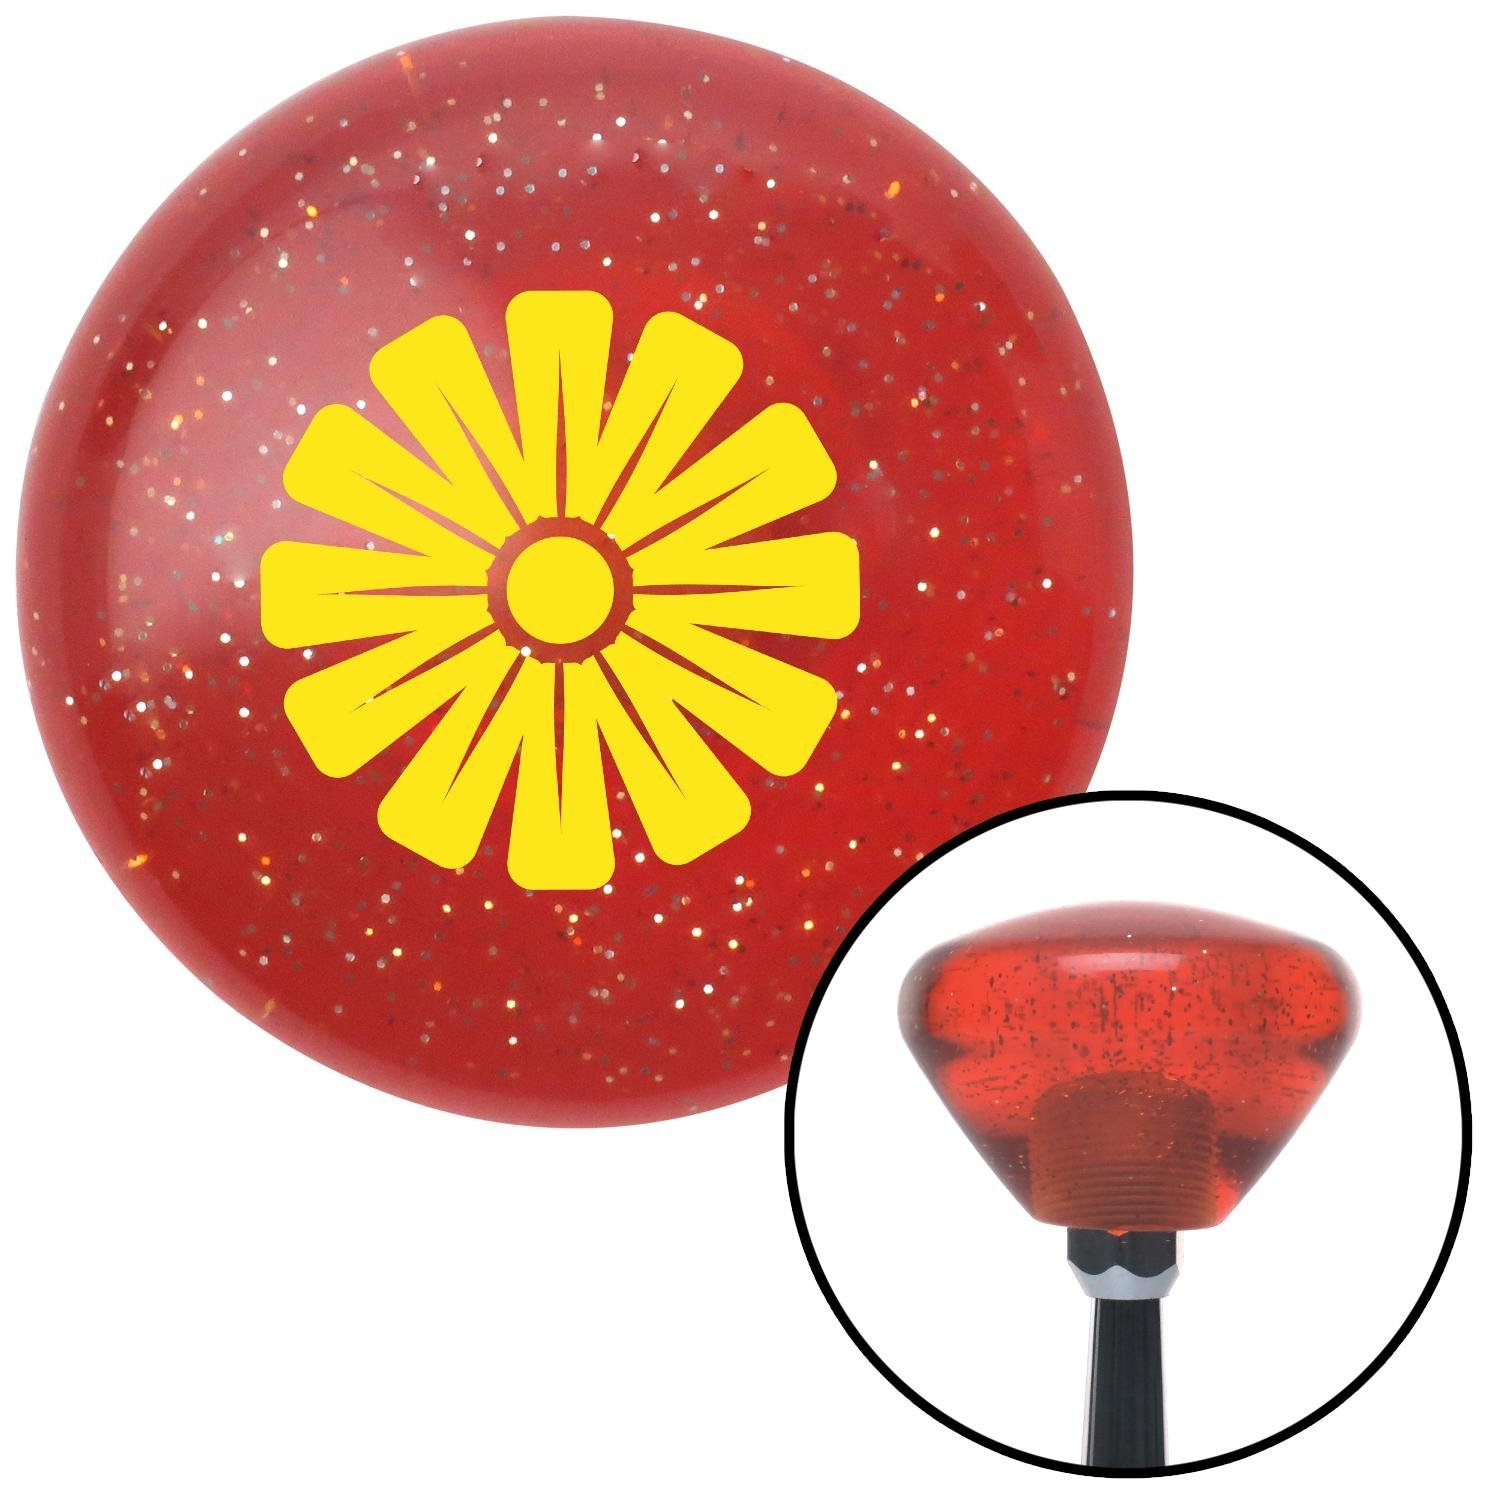 American Shifter 181099 Orange Retro Metal Flake Shift Knob with M16 x 1.5 Insert Yellow Hawaiian Flower #1